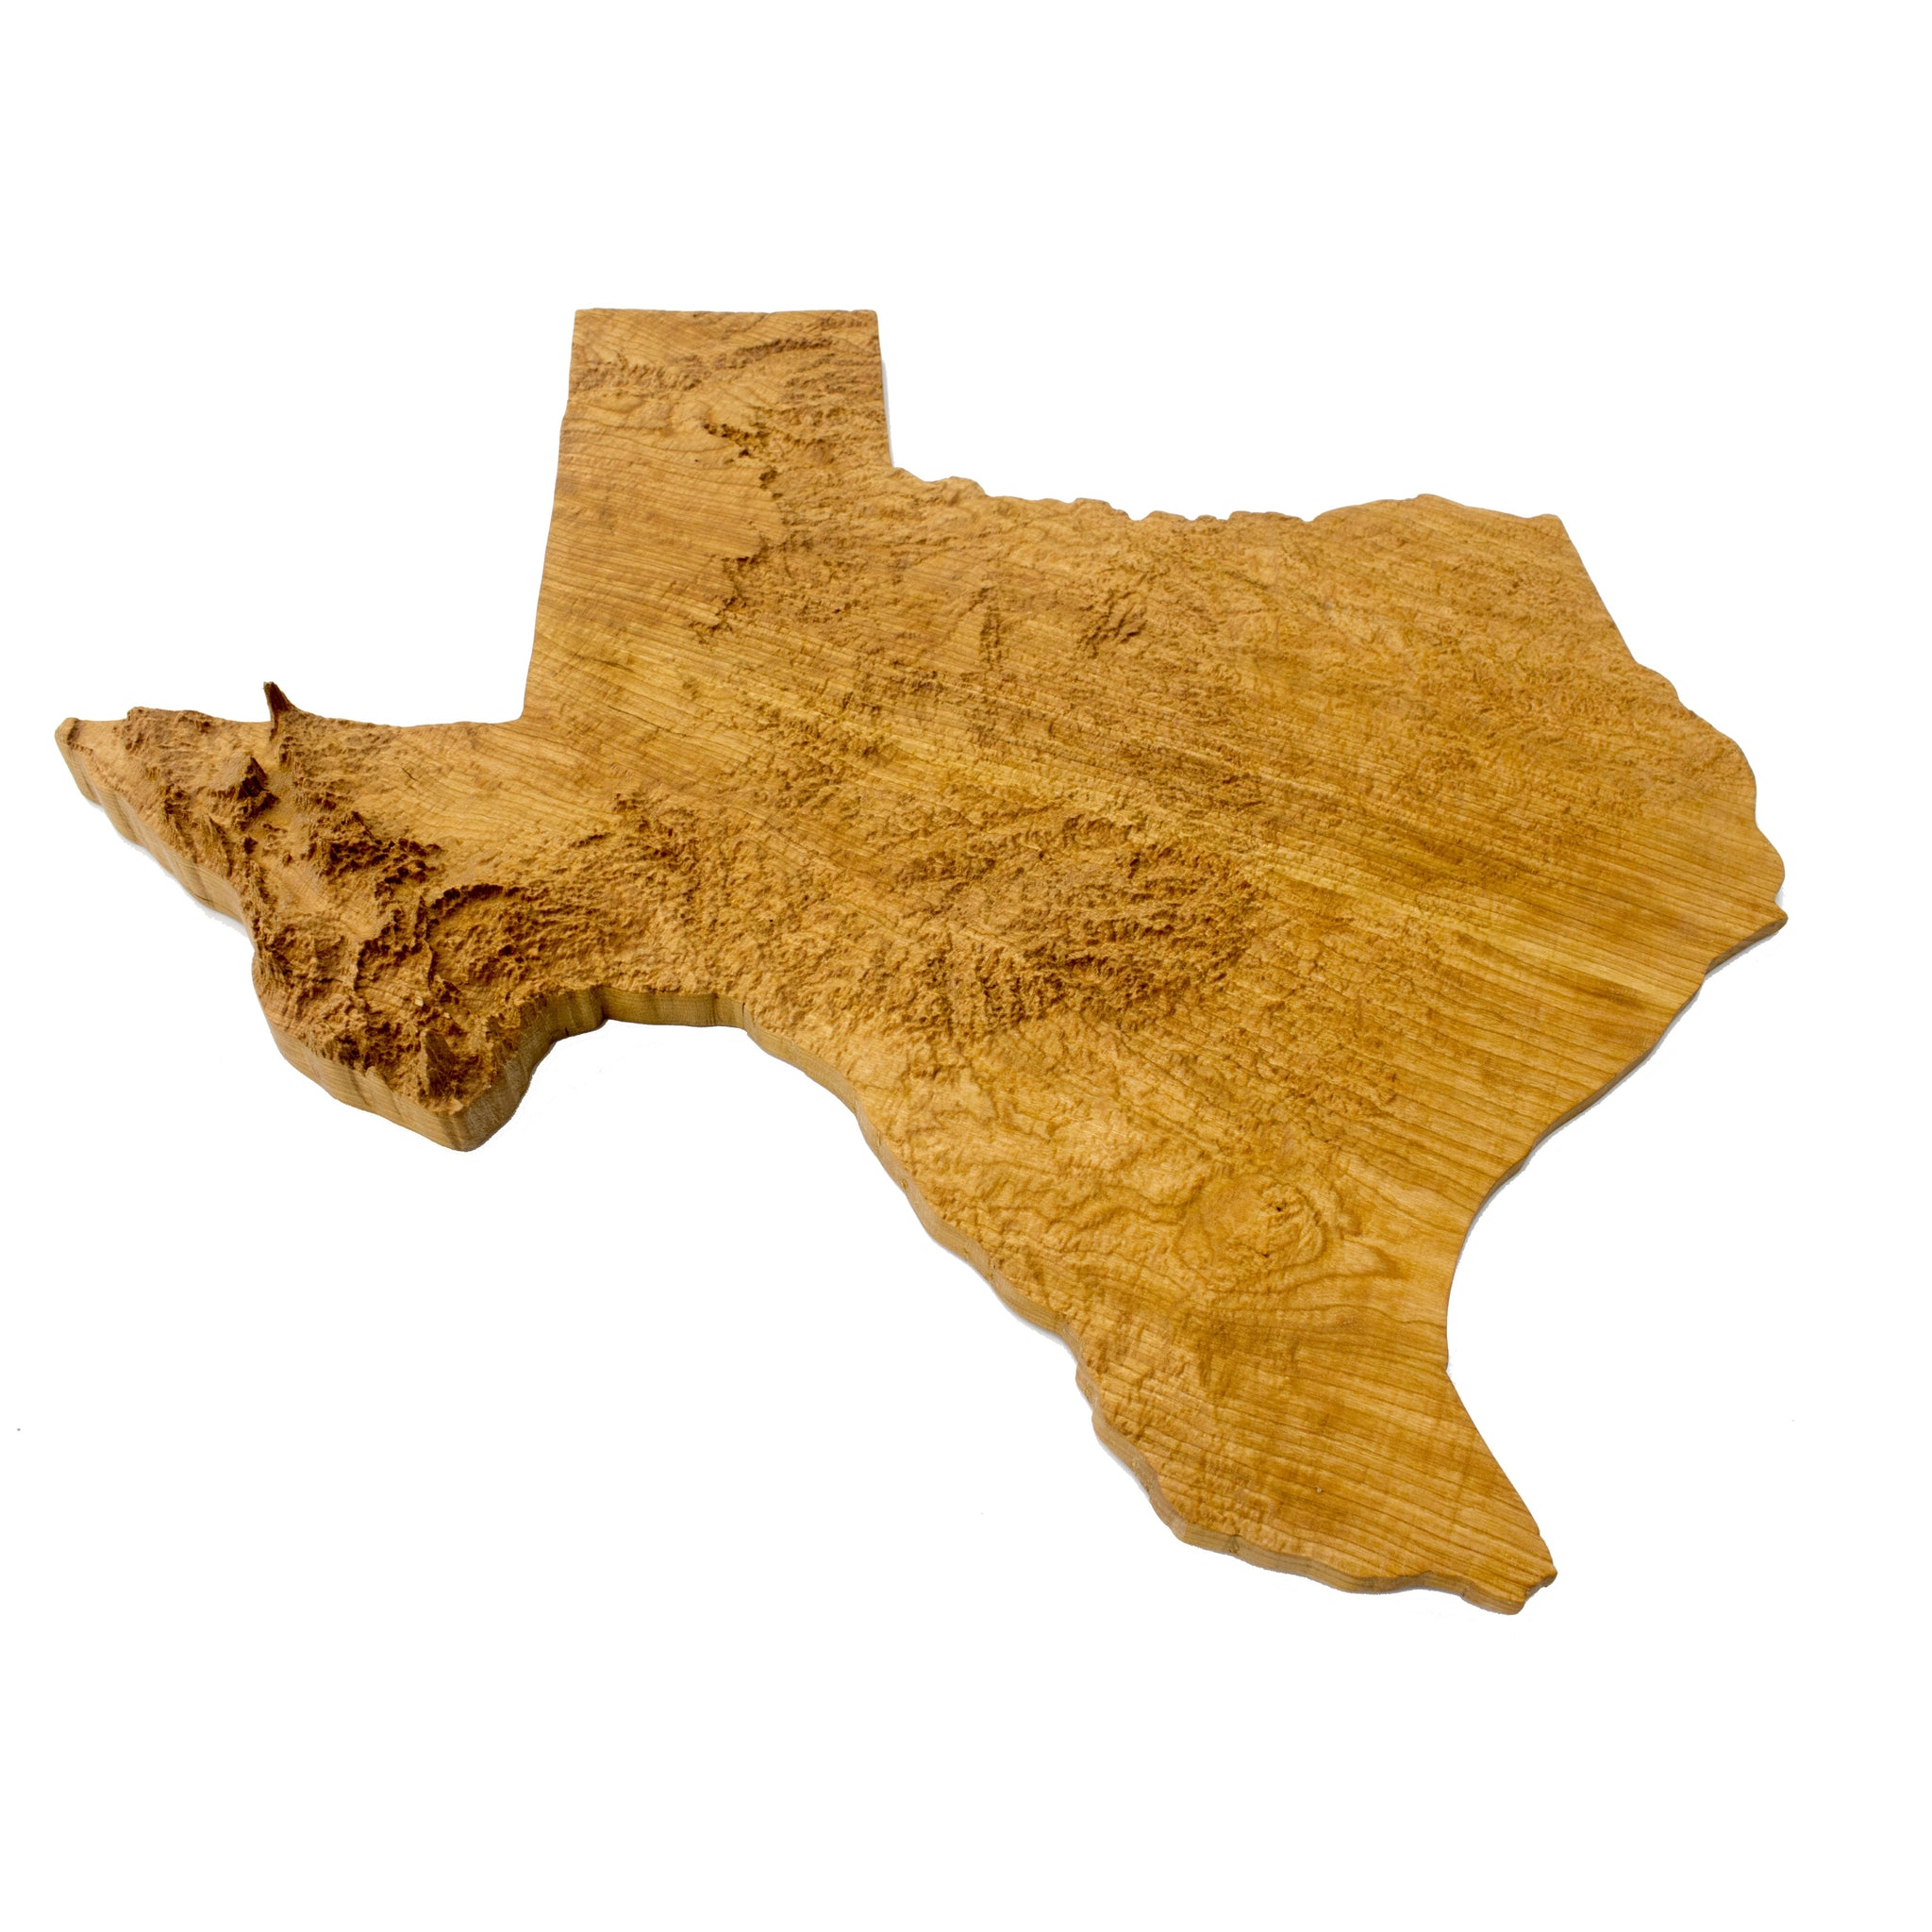 Topographical Map Of Texas Wooden topographic map of Texas – Elevated Woodworking